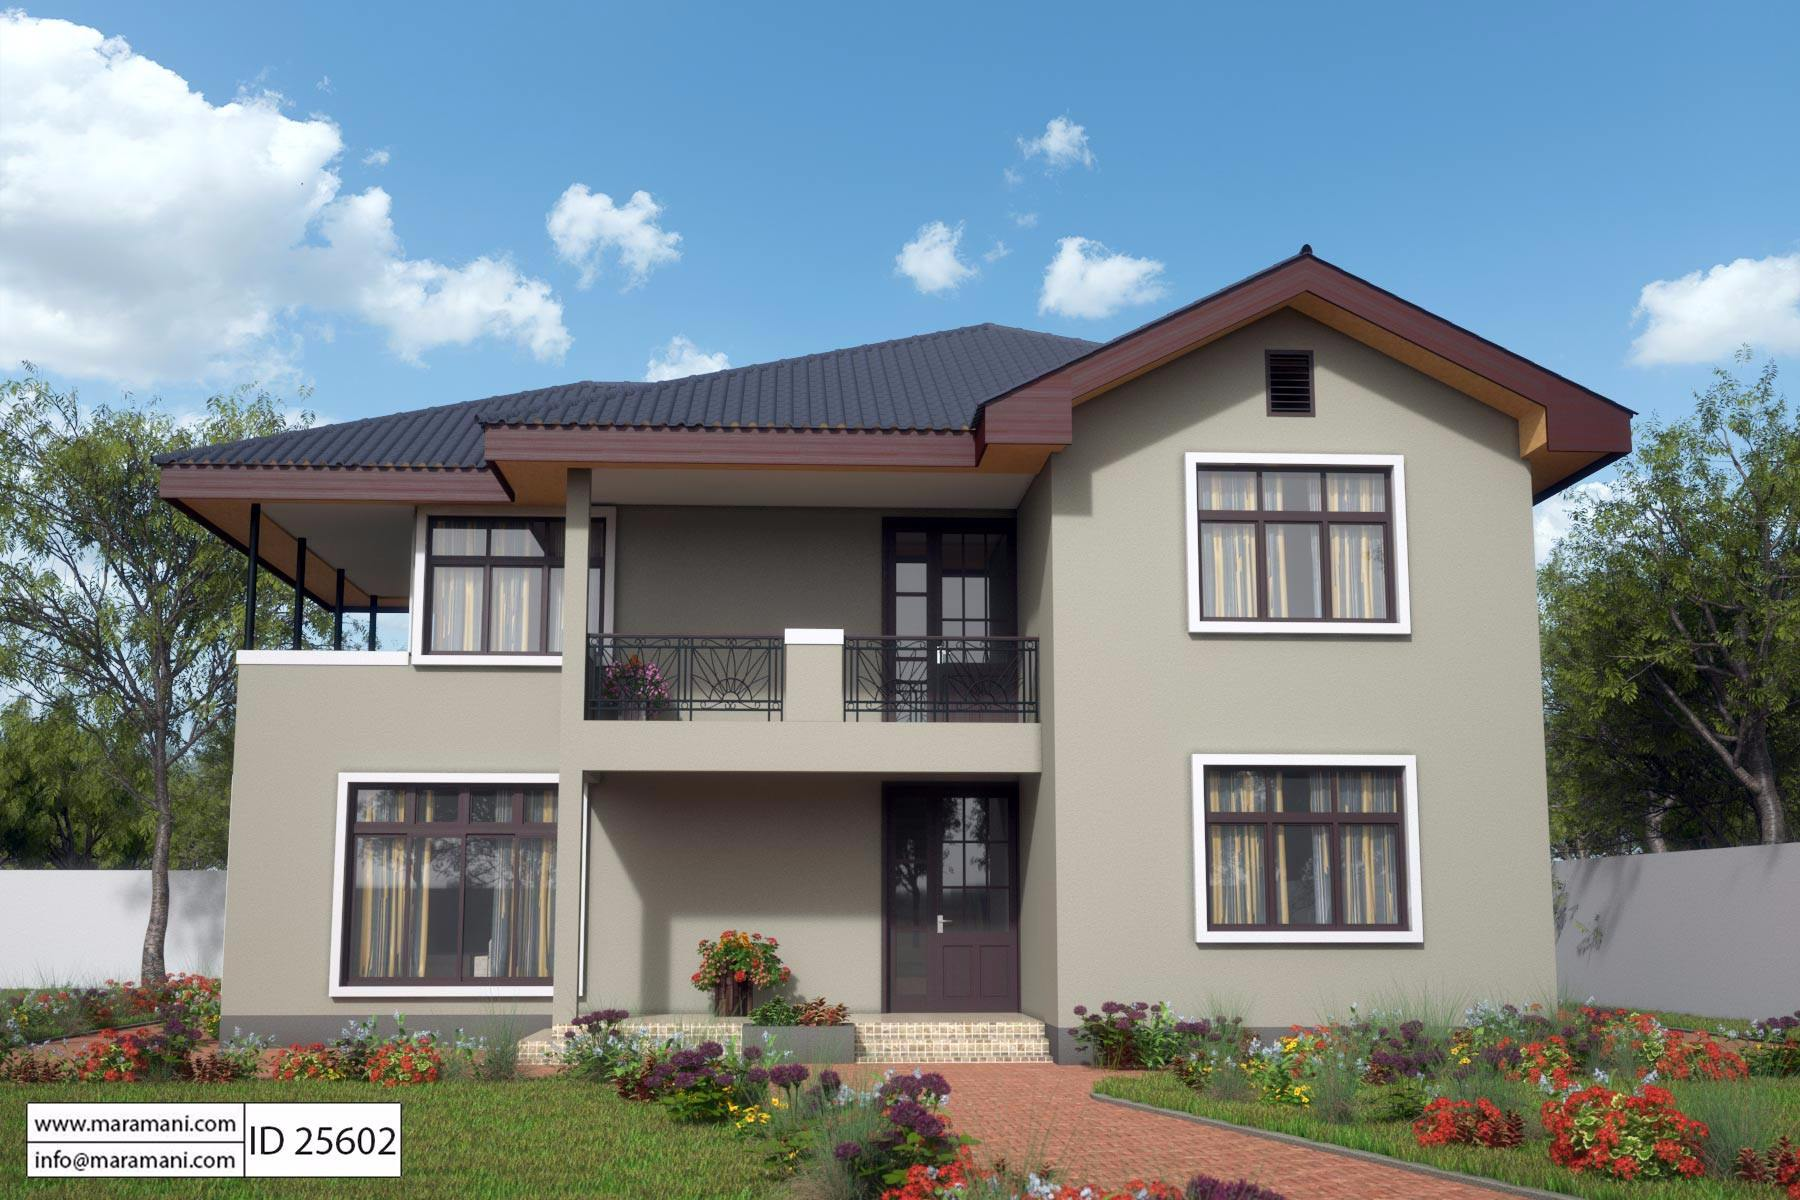 5 bedroom house design id 25602 house plans by maramani for 5 bedroom house plans